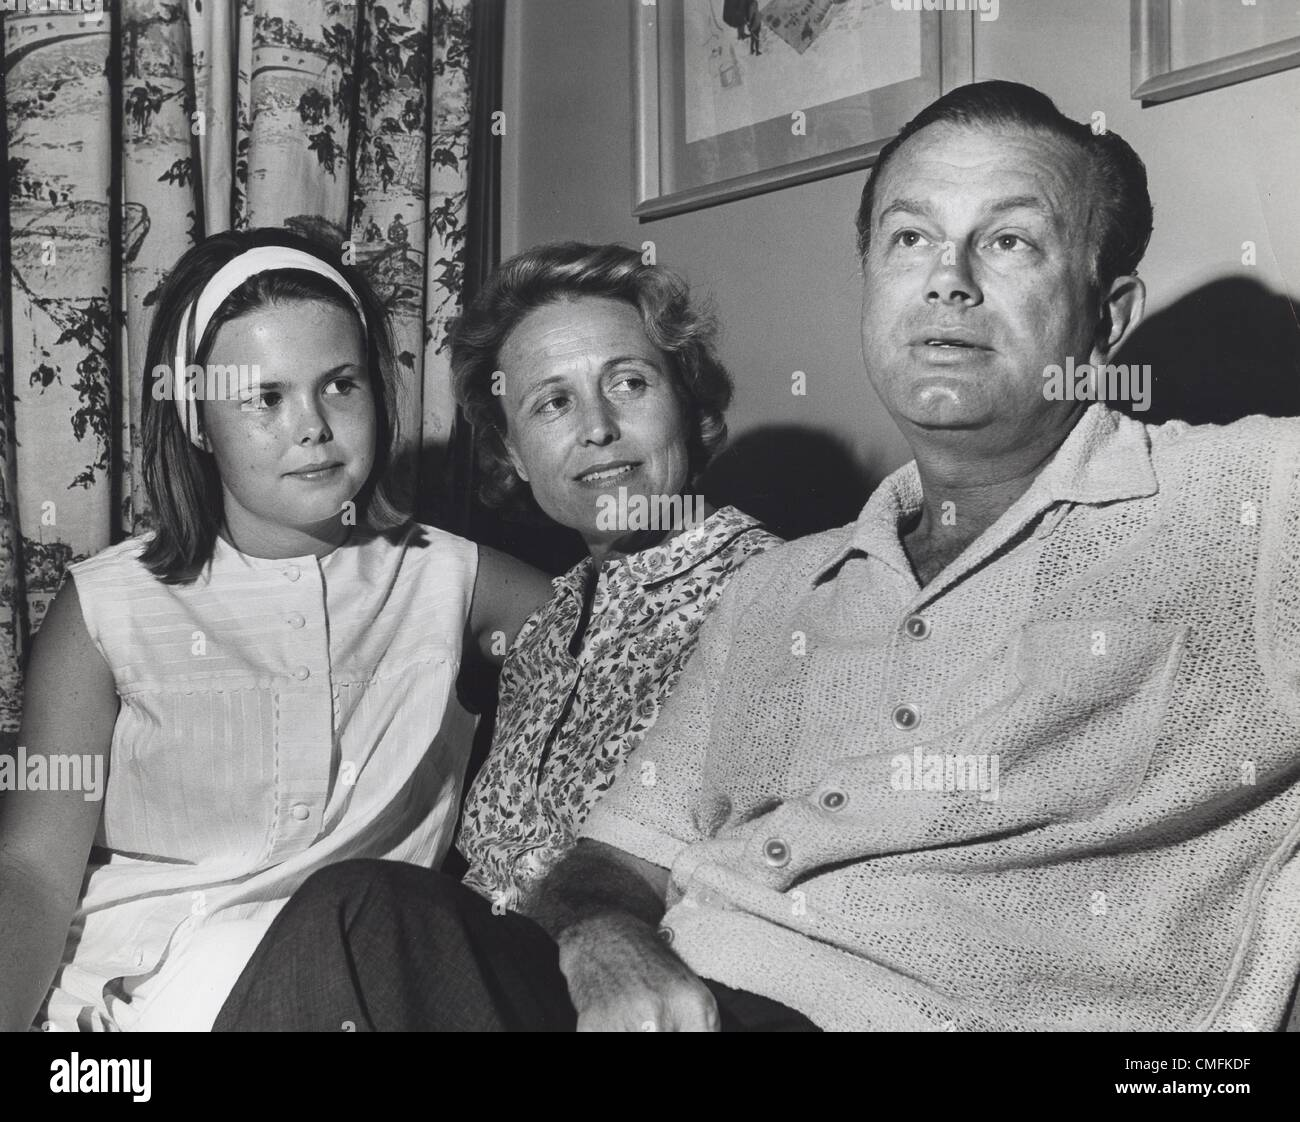 Jack Wagner Wife Delightful jack paar with wife miriam wagner and daughter randy paar.supplied